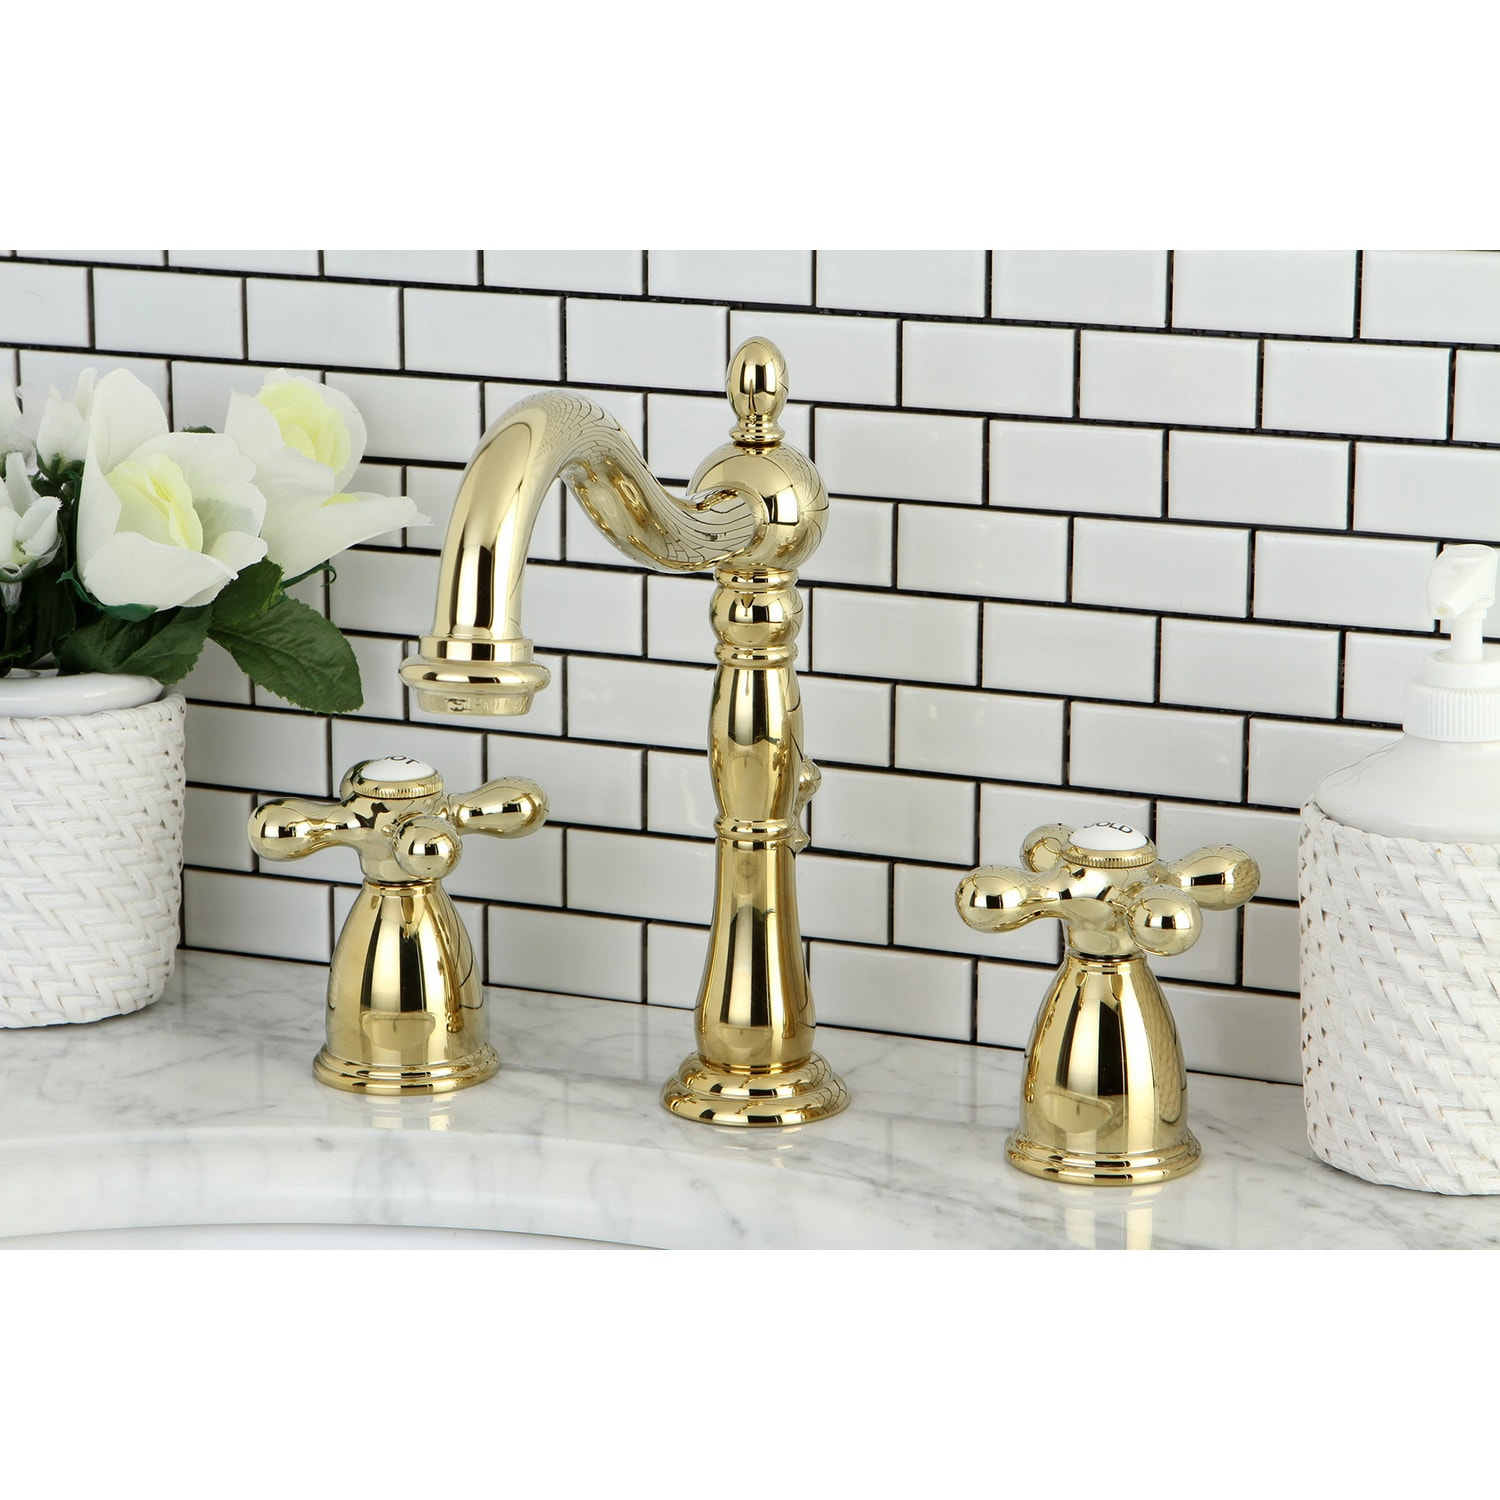 widespread home kingston sink full single faucet faucets handle bathroom polished of size designs brass